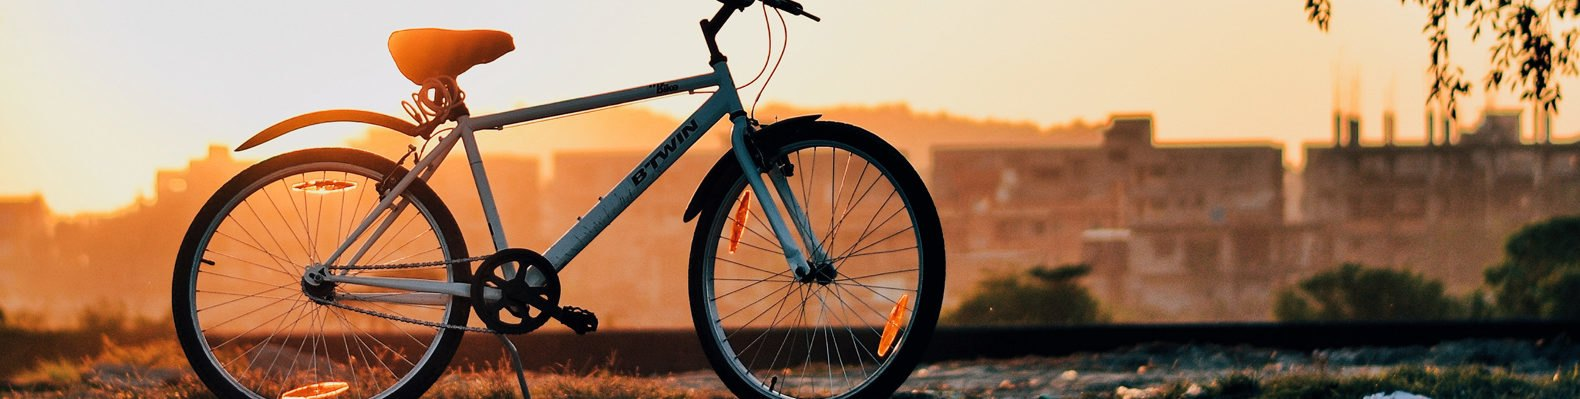 Bike at sunset with city skyline in background